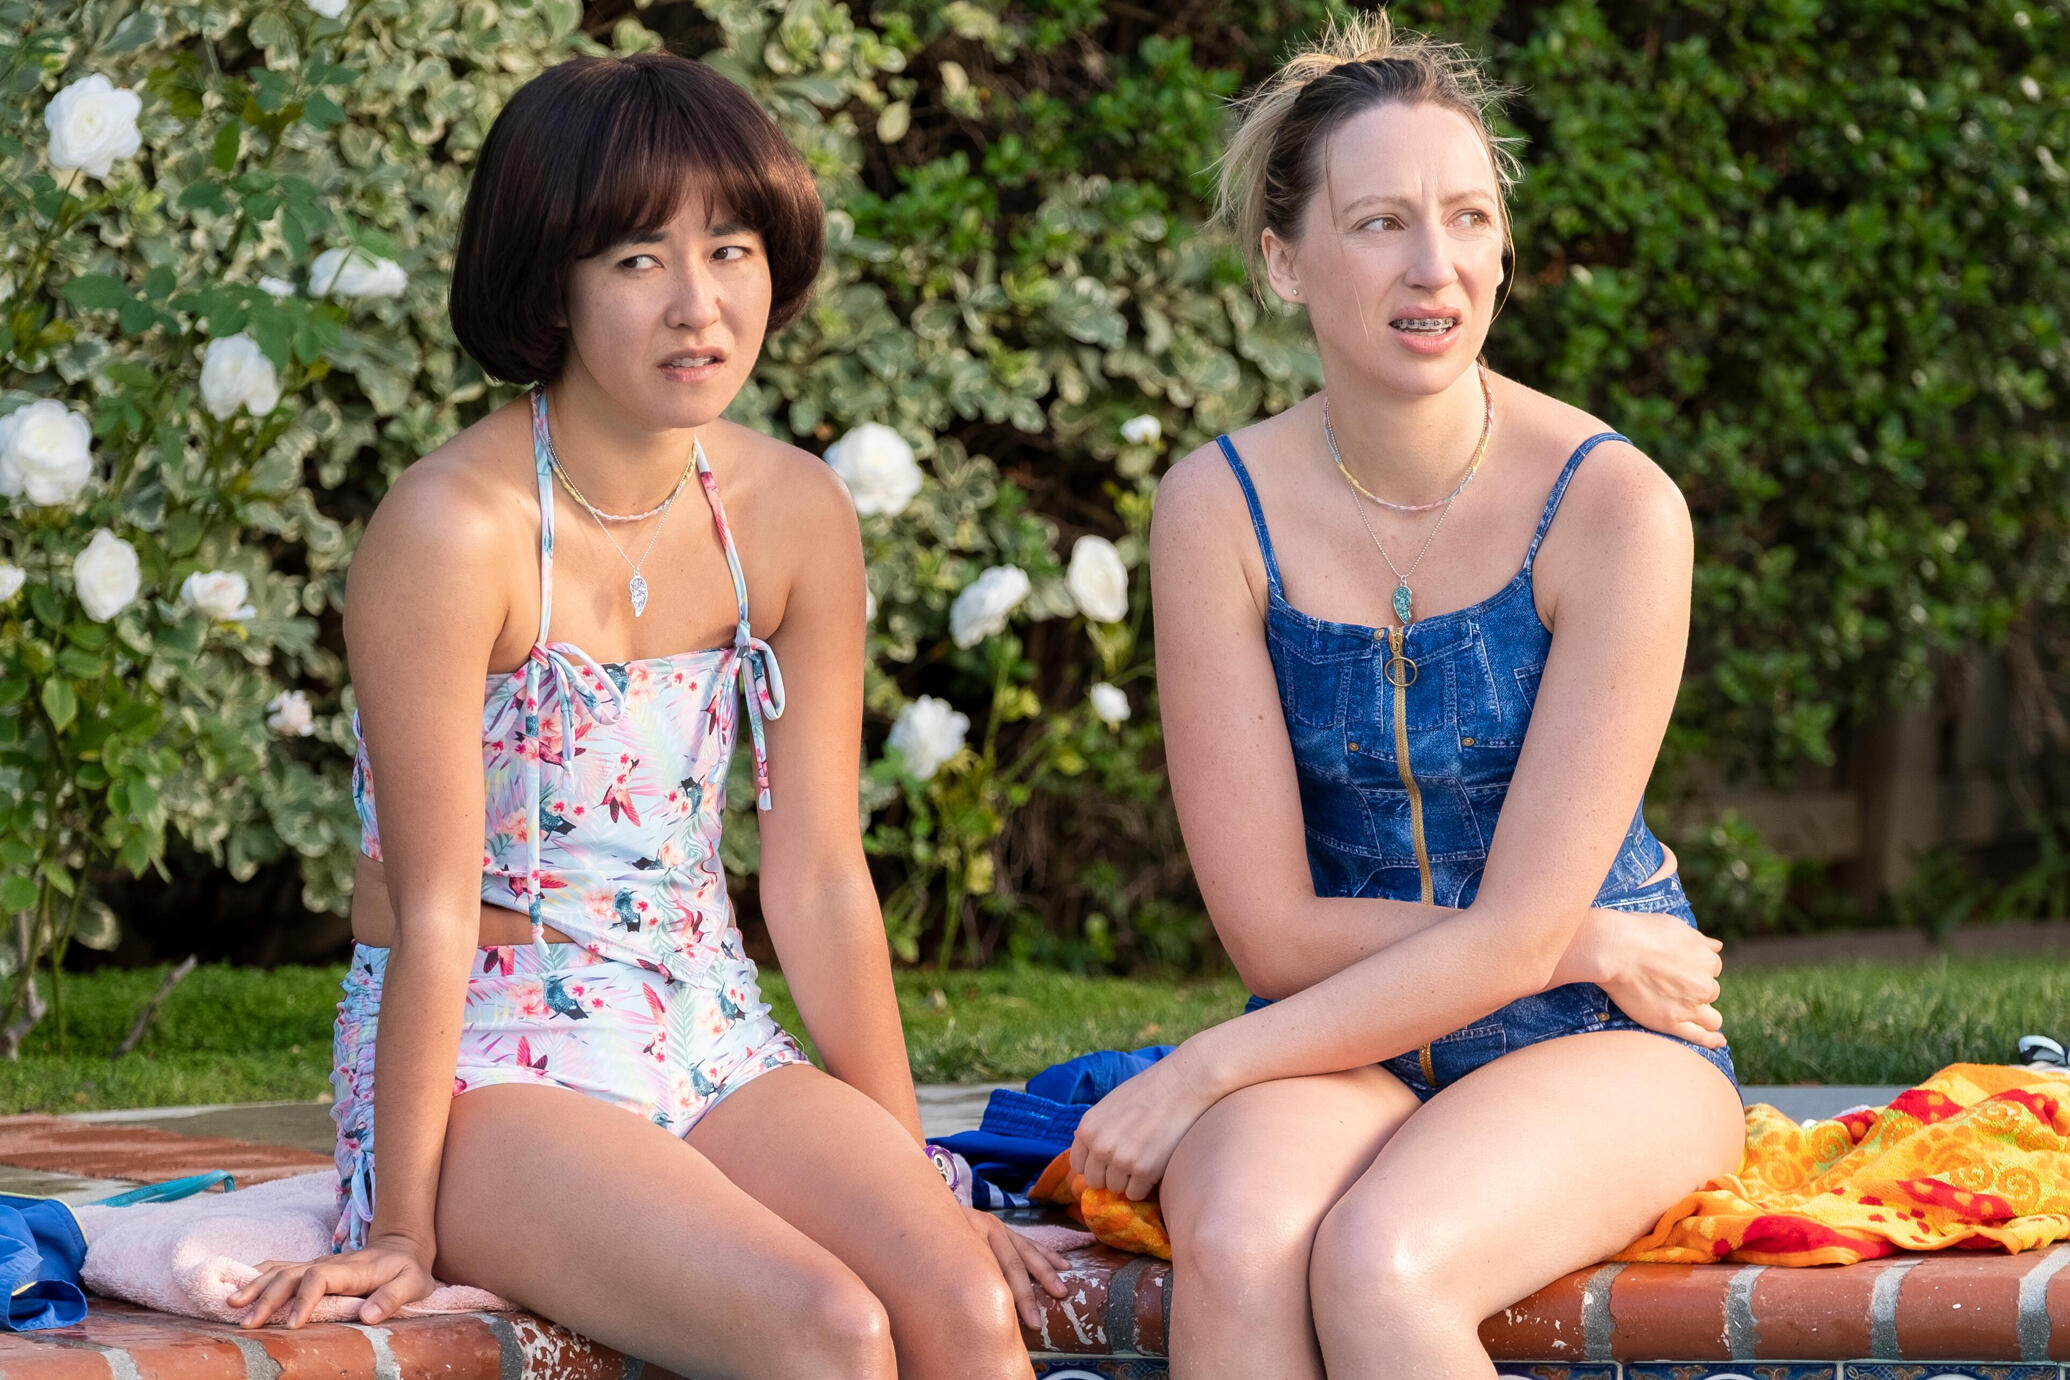 pen15-is-as-awkward-as-ever-in-the-season-2-trailer.jpg